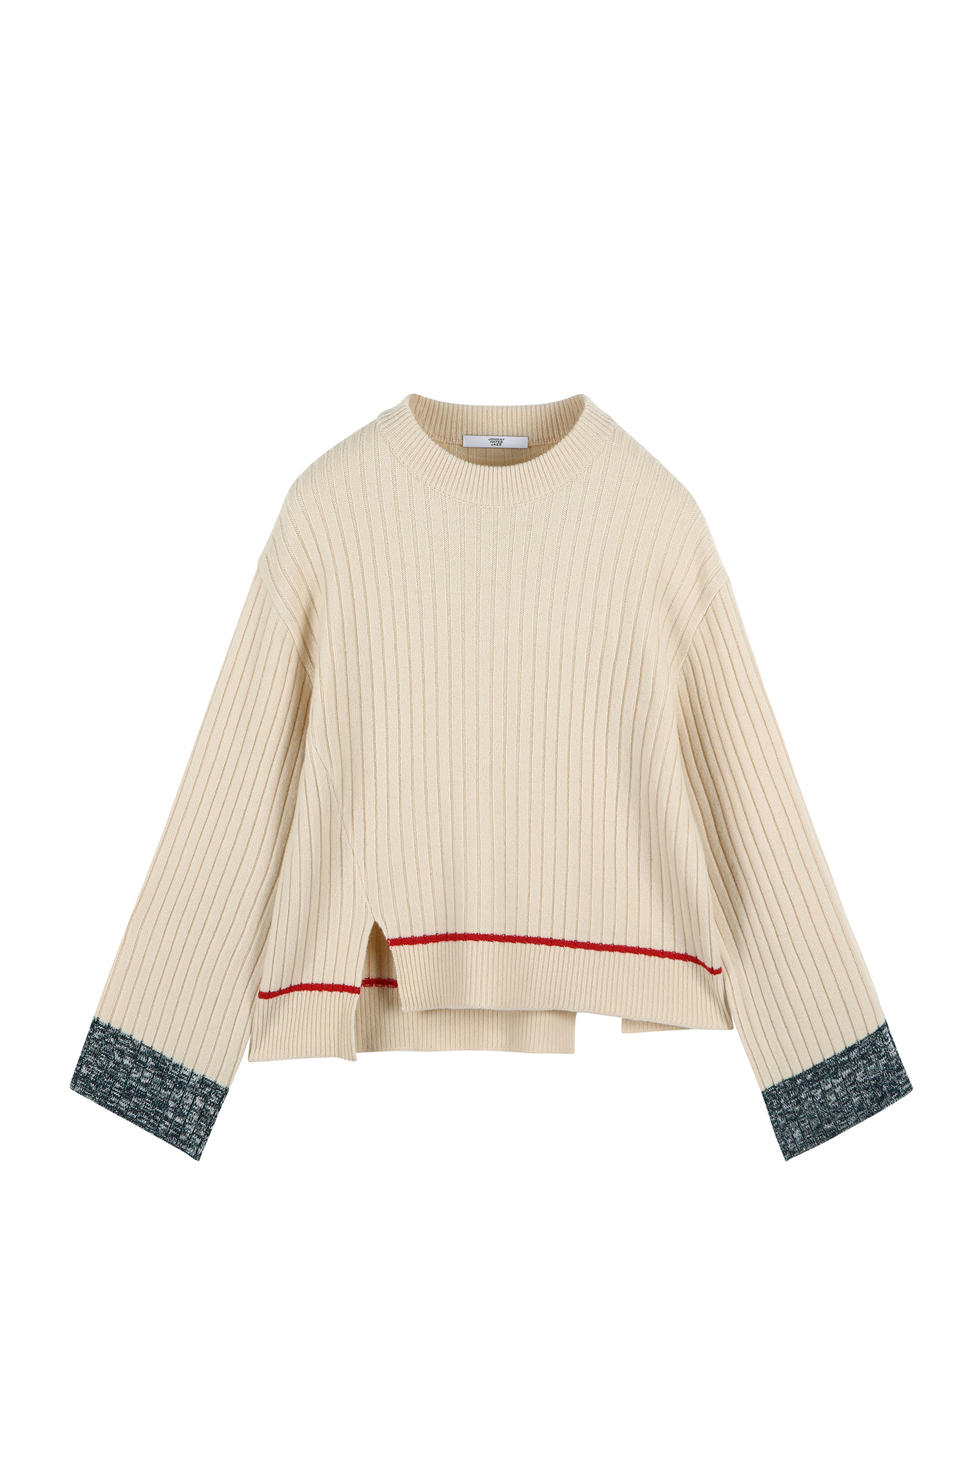 COLOR BLOCK KNIT PULLOVER - IVORY